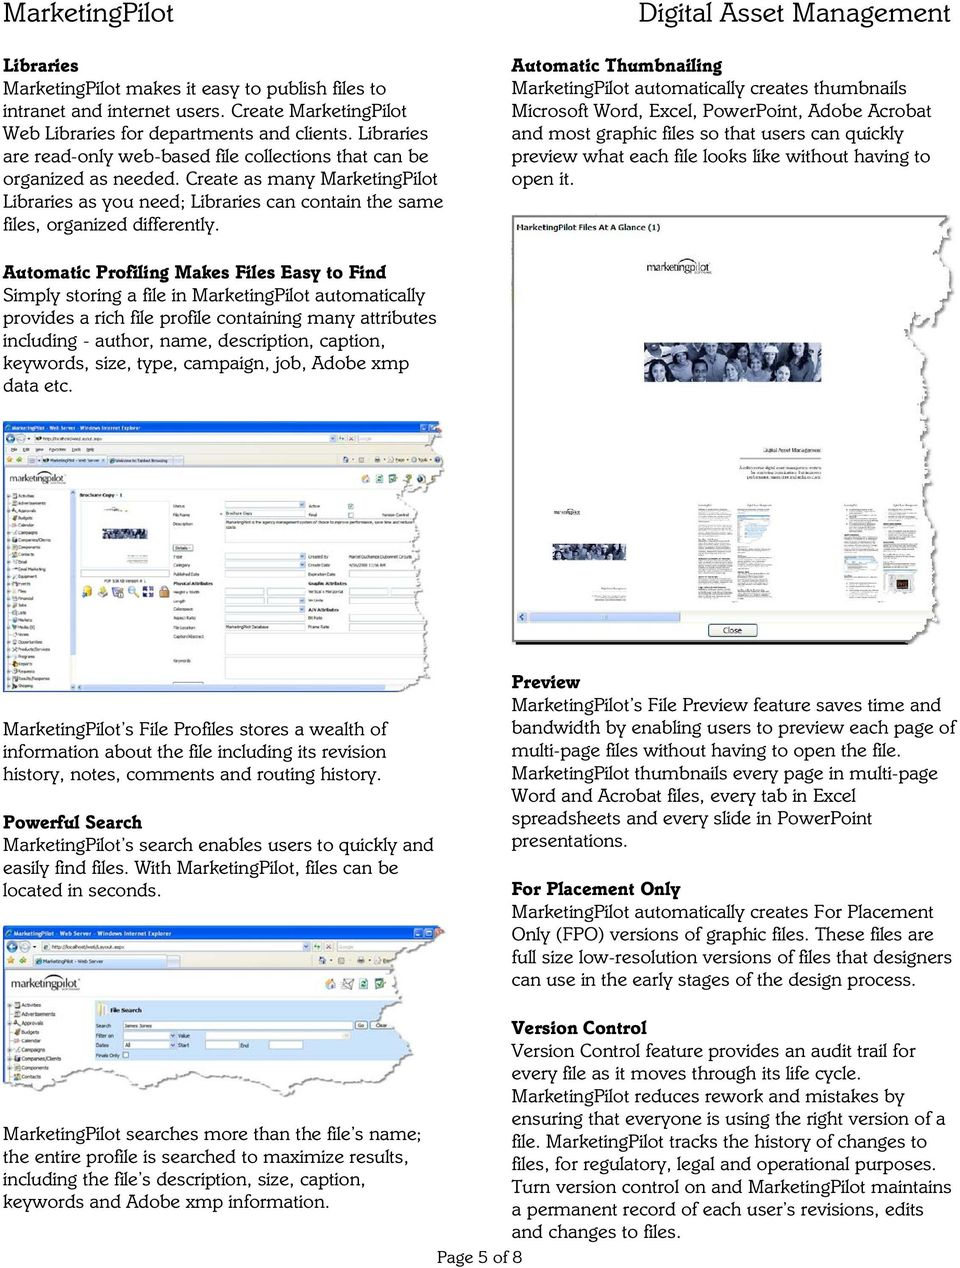 Automatic Thumbnailing MarketingPilot automatically creates thumbnails Microsoft Word, Excel, PowerPoint, Adobe Acrobat and most graphic files so that users can quickly preview what each file looks